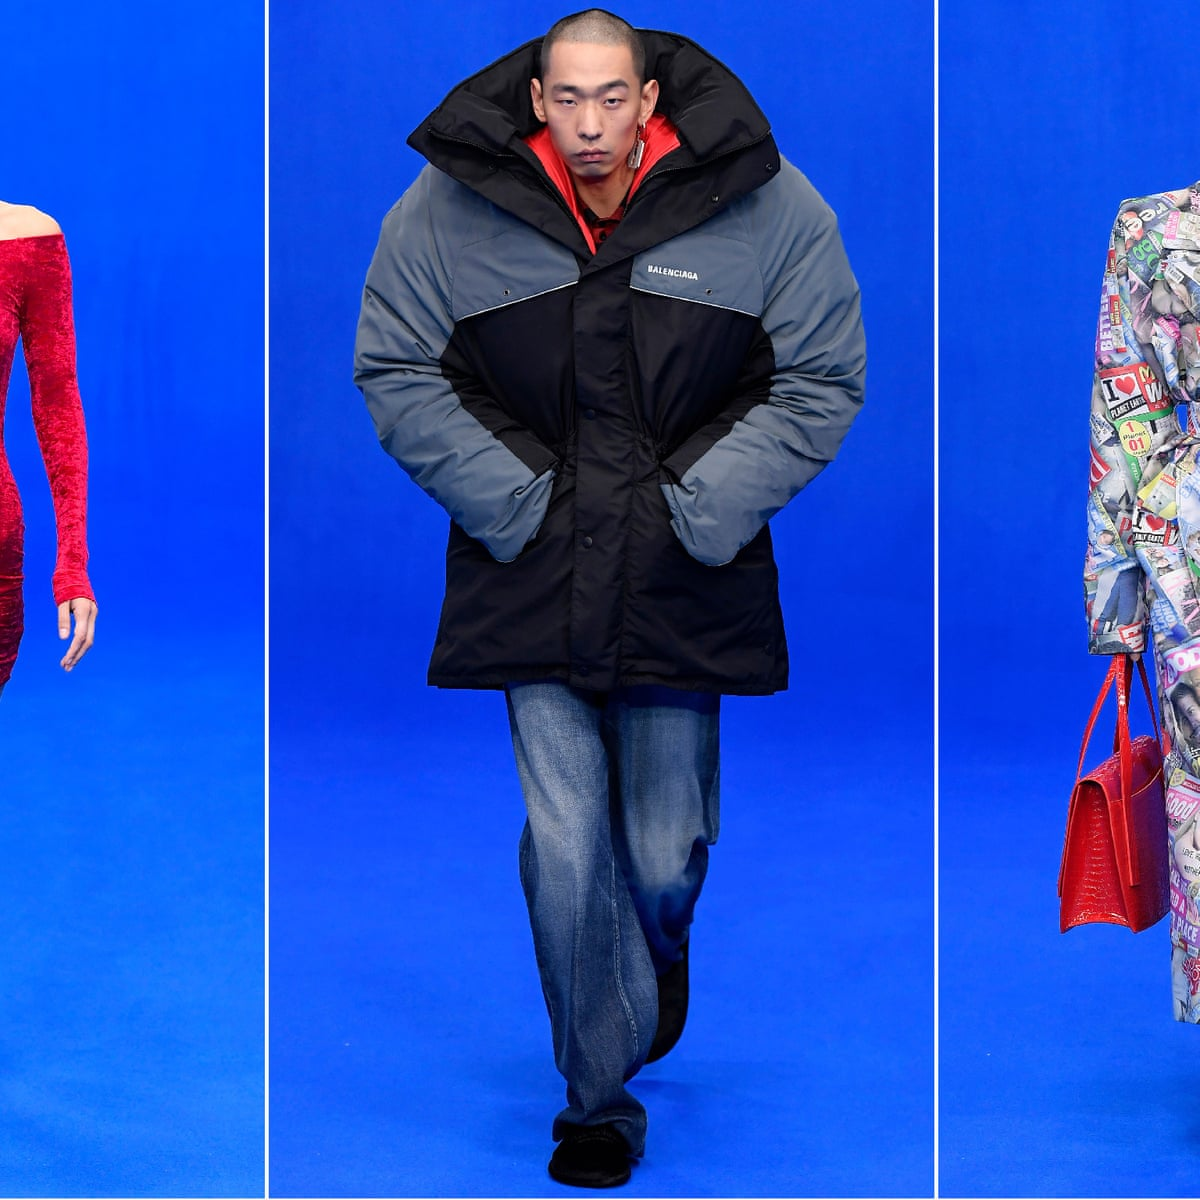 Molti spada appendere  Stranger things: Balenciaga goes for larger-than-life designs | Paris  fashion week | The Guardian